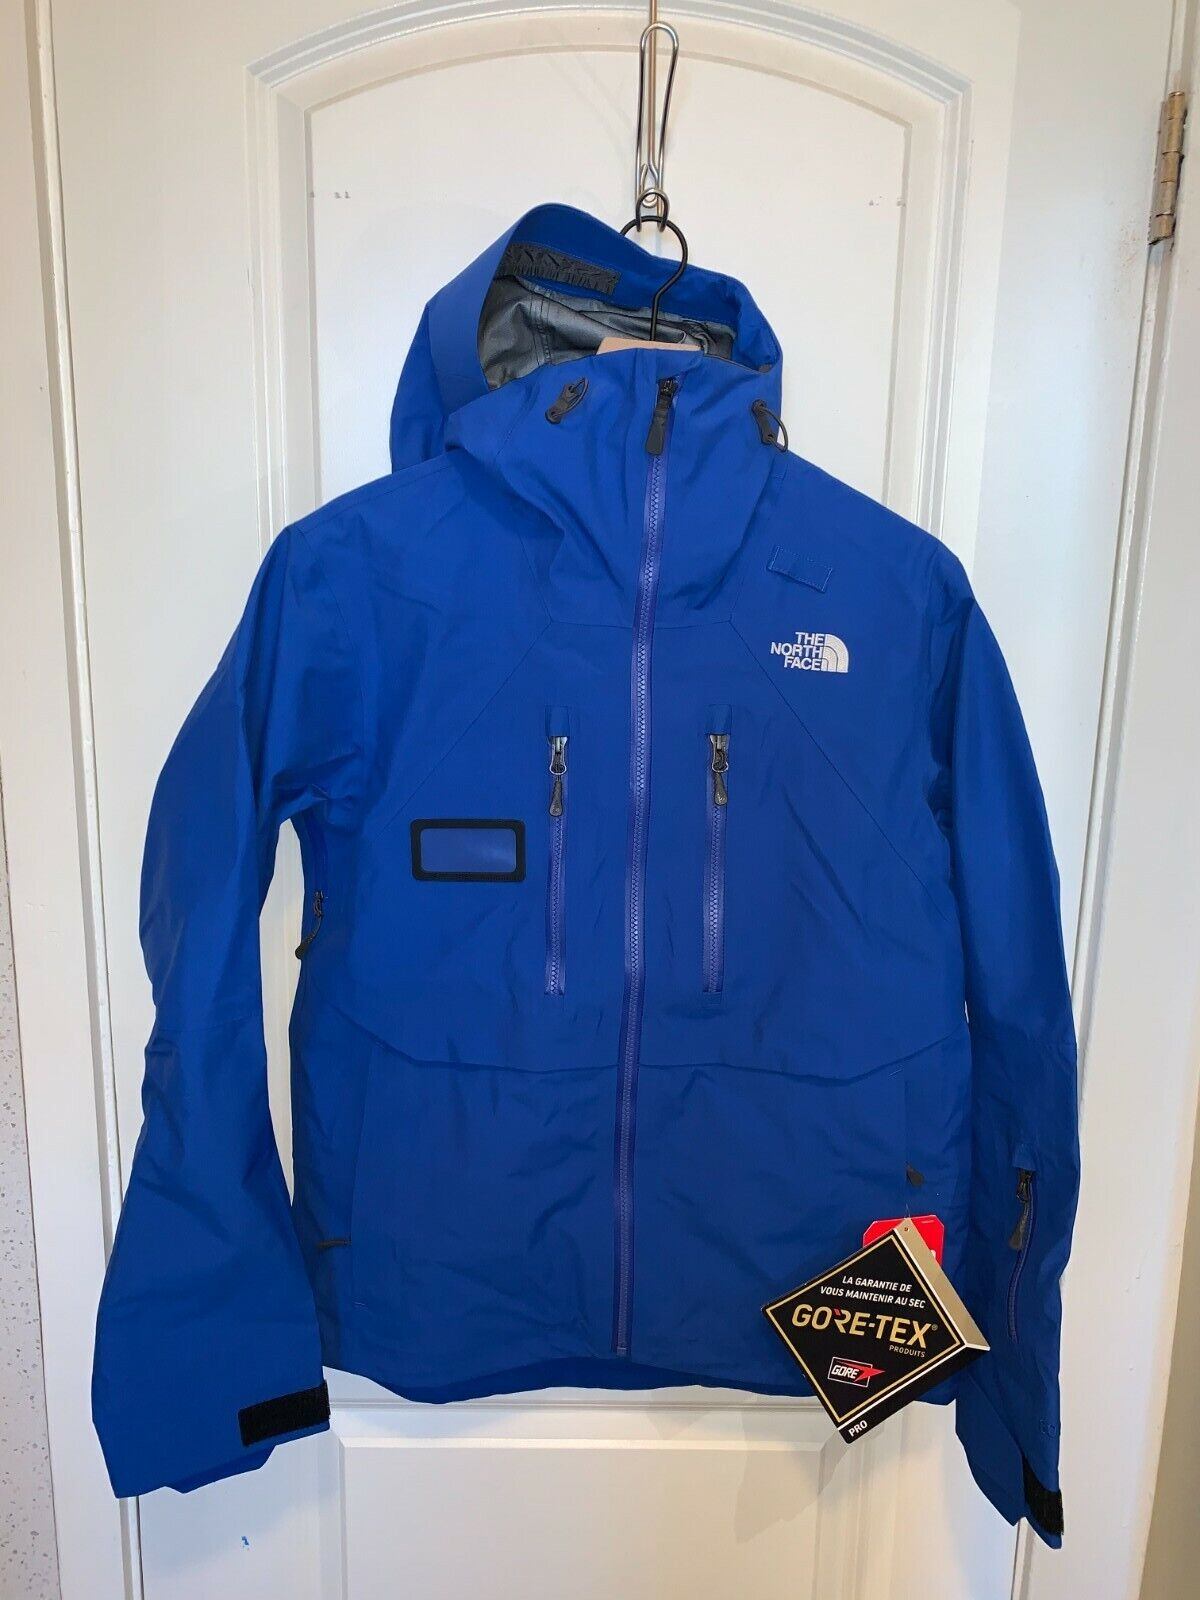 NWT The North Face Men's Mountain Pro Jacket GORE-TEX BLUE M